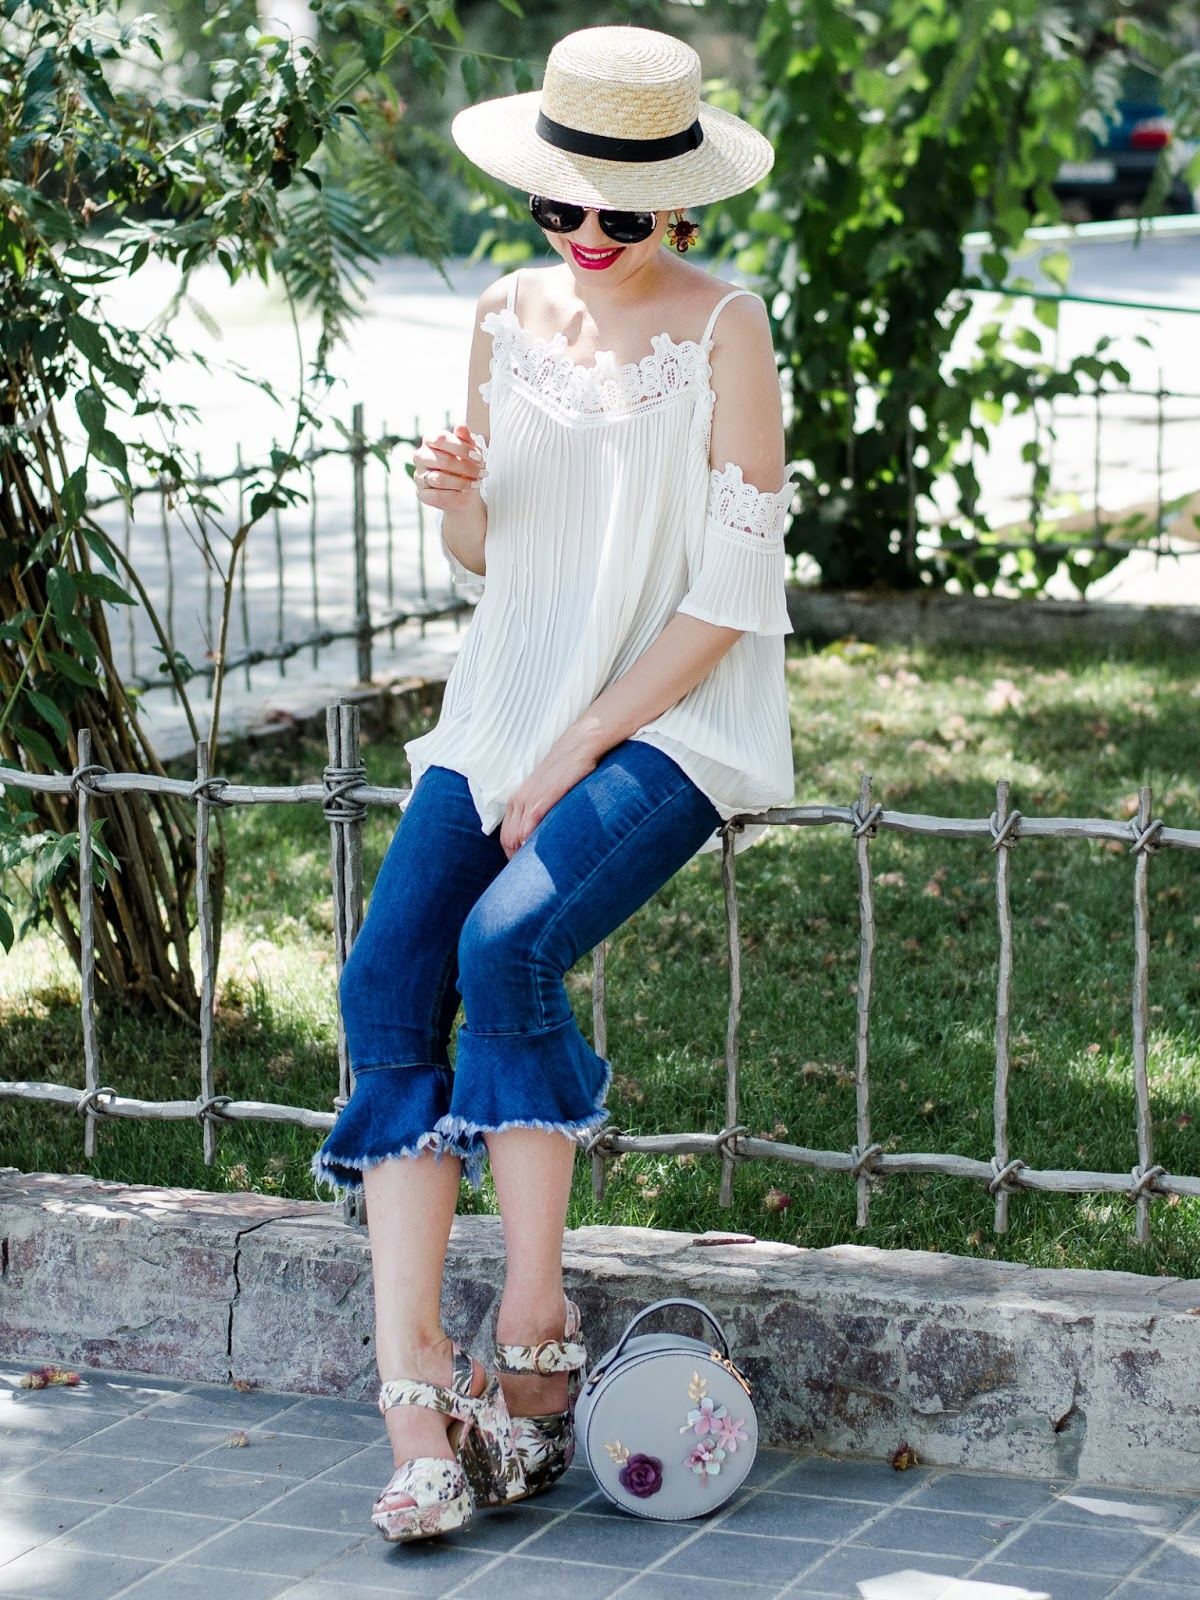 fashion blogger diyorasnotes diyora beta white pleted top cold shoulders ripped jeans straw hat asos high heels casual chic summer outfit lookoftheday